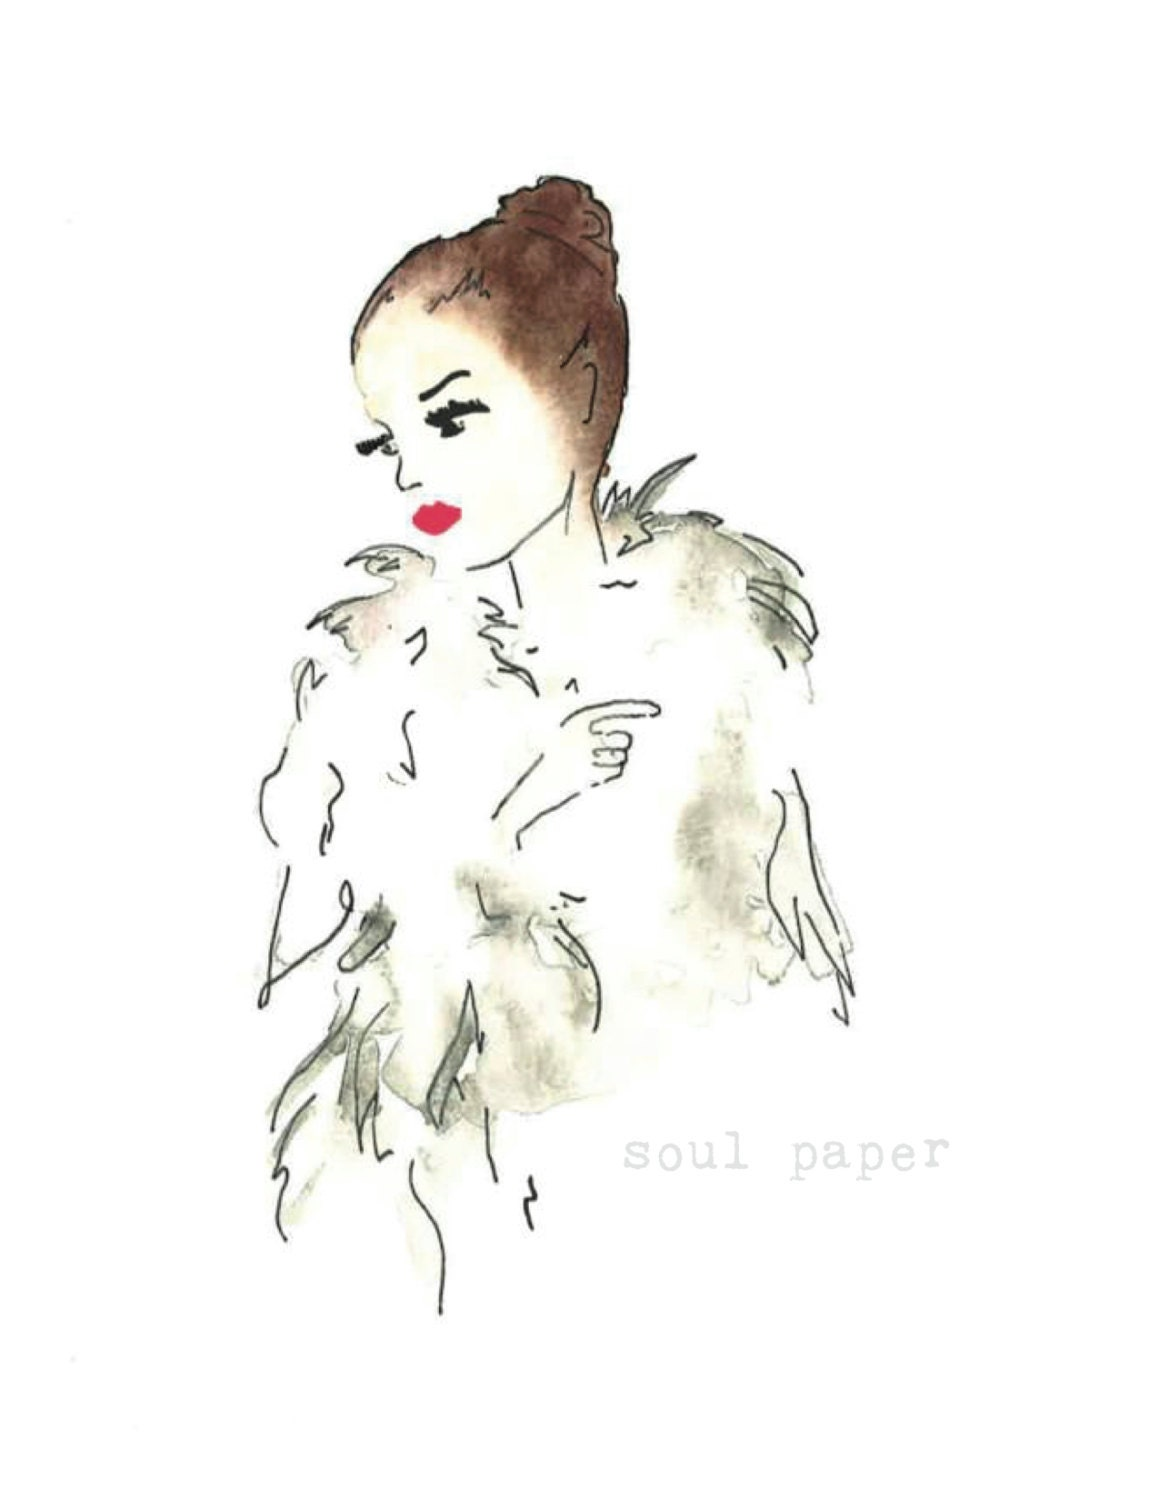 fashion illustration by soulpaperart on etsy